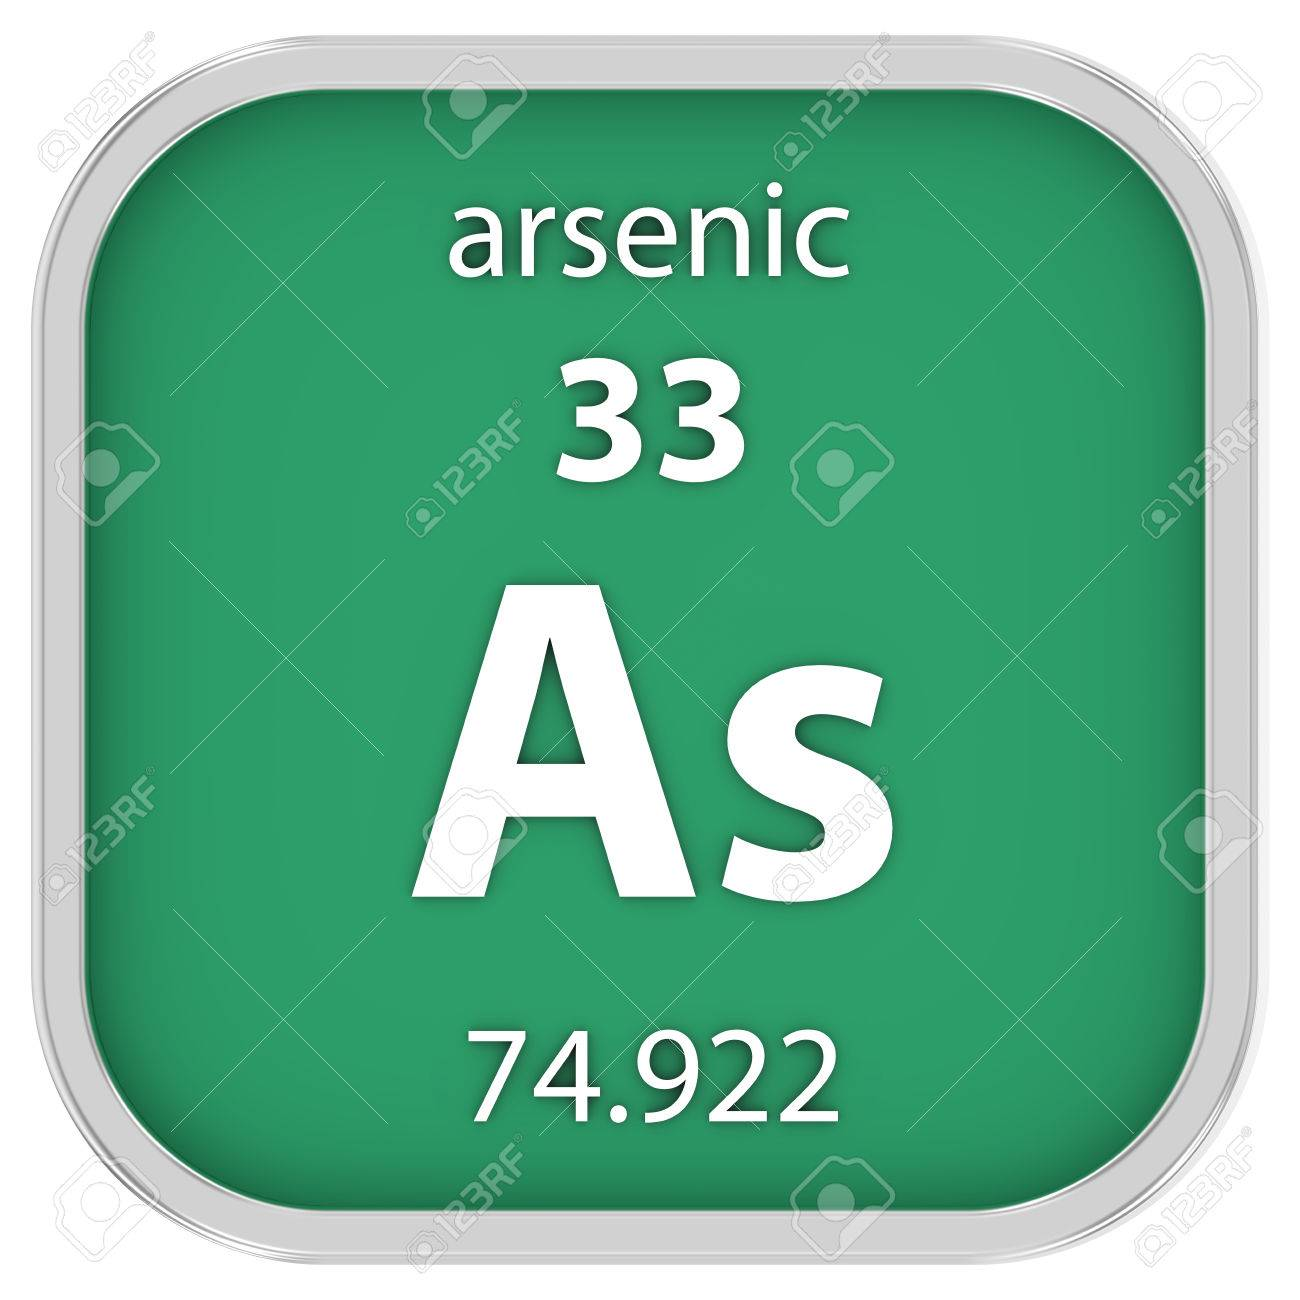 Arsenic material on the periodic table stock photo picture and arsenic material on the periodic table stock photo 41093492 biocorpaavc Image collections